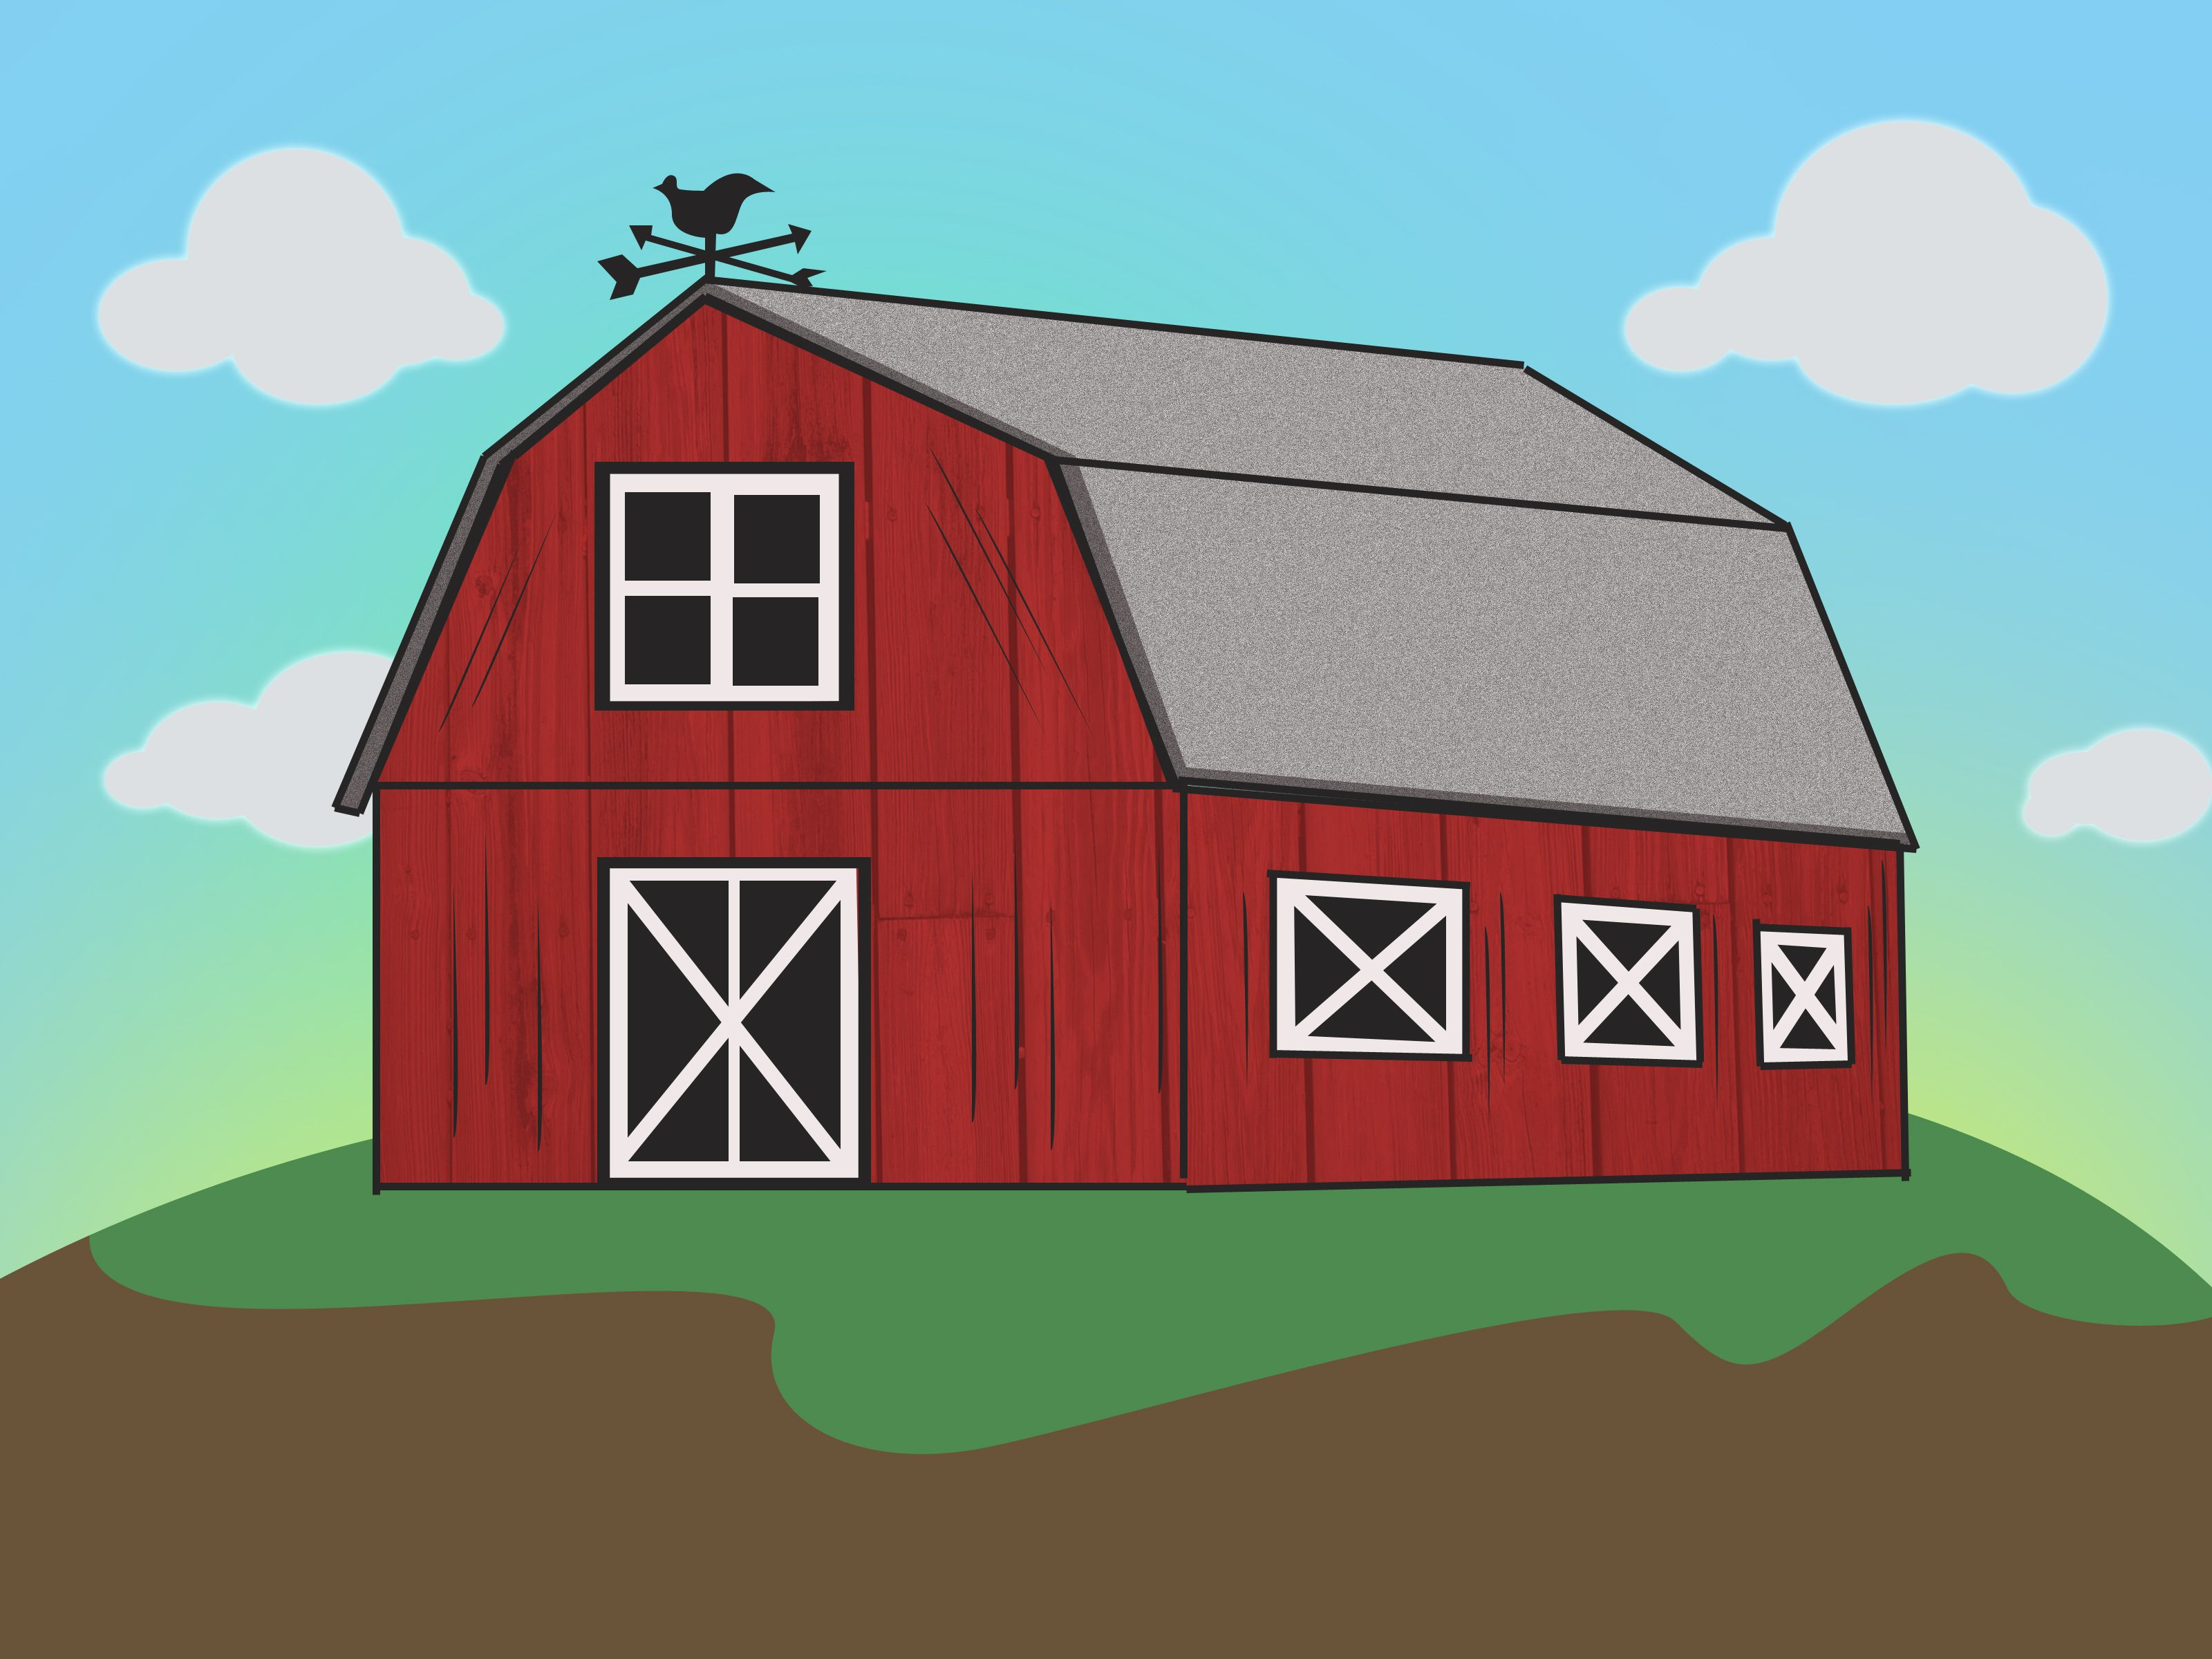 How to Draw a Barn Red barn house, Red barn, Barn drawing